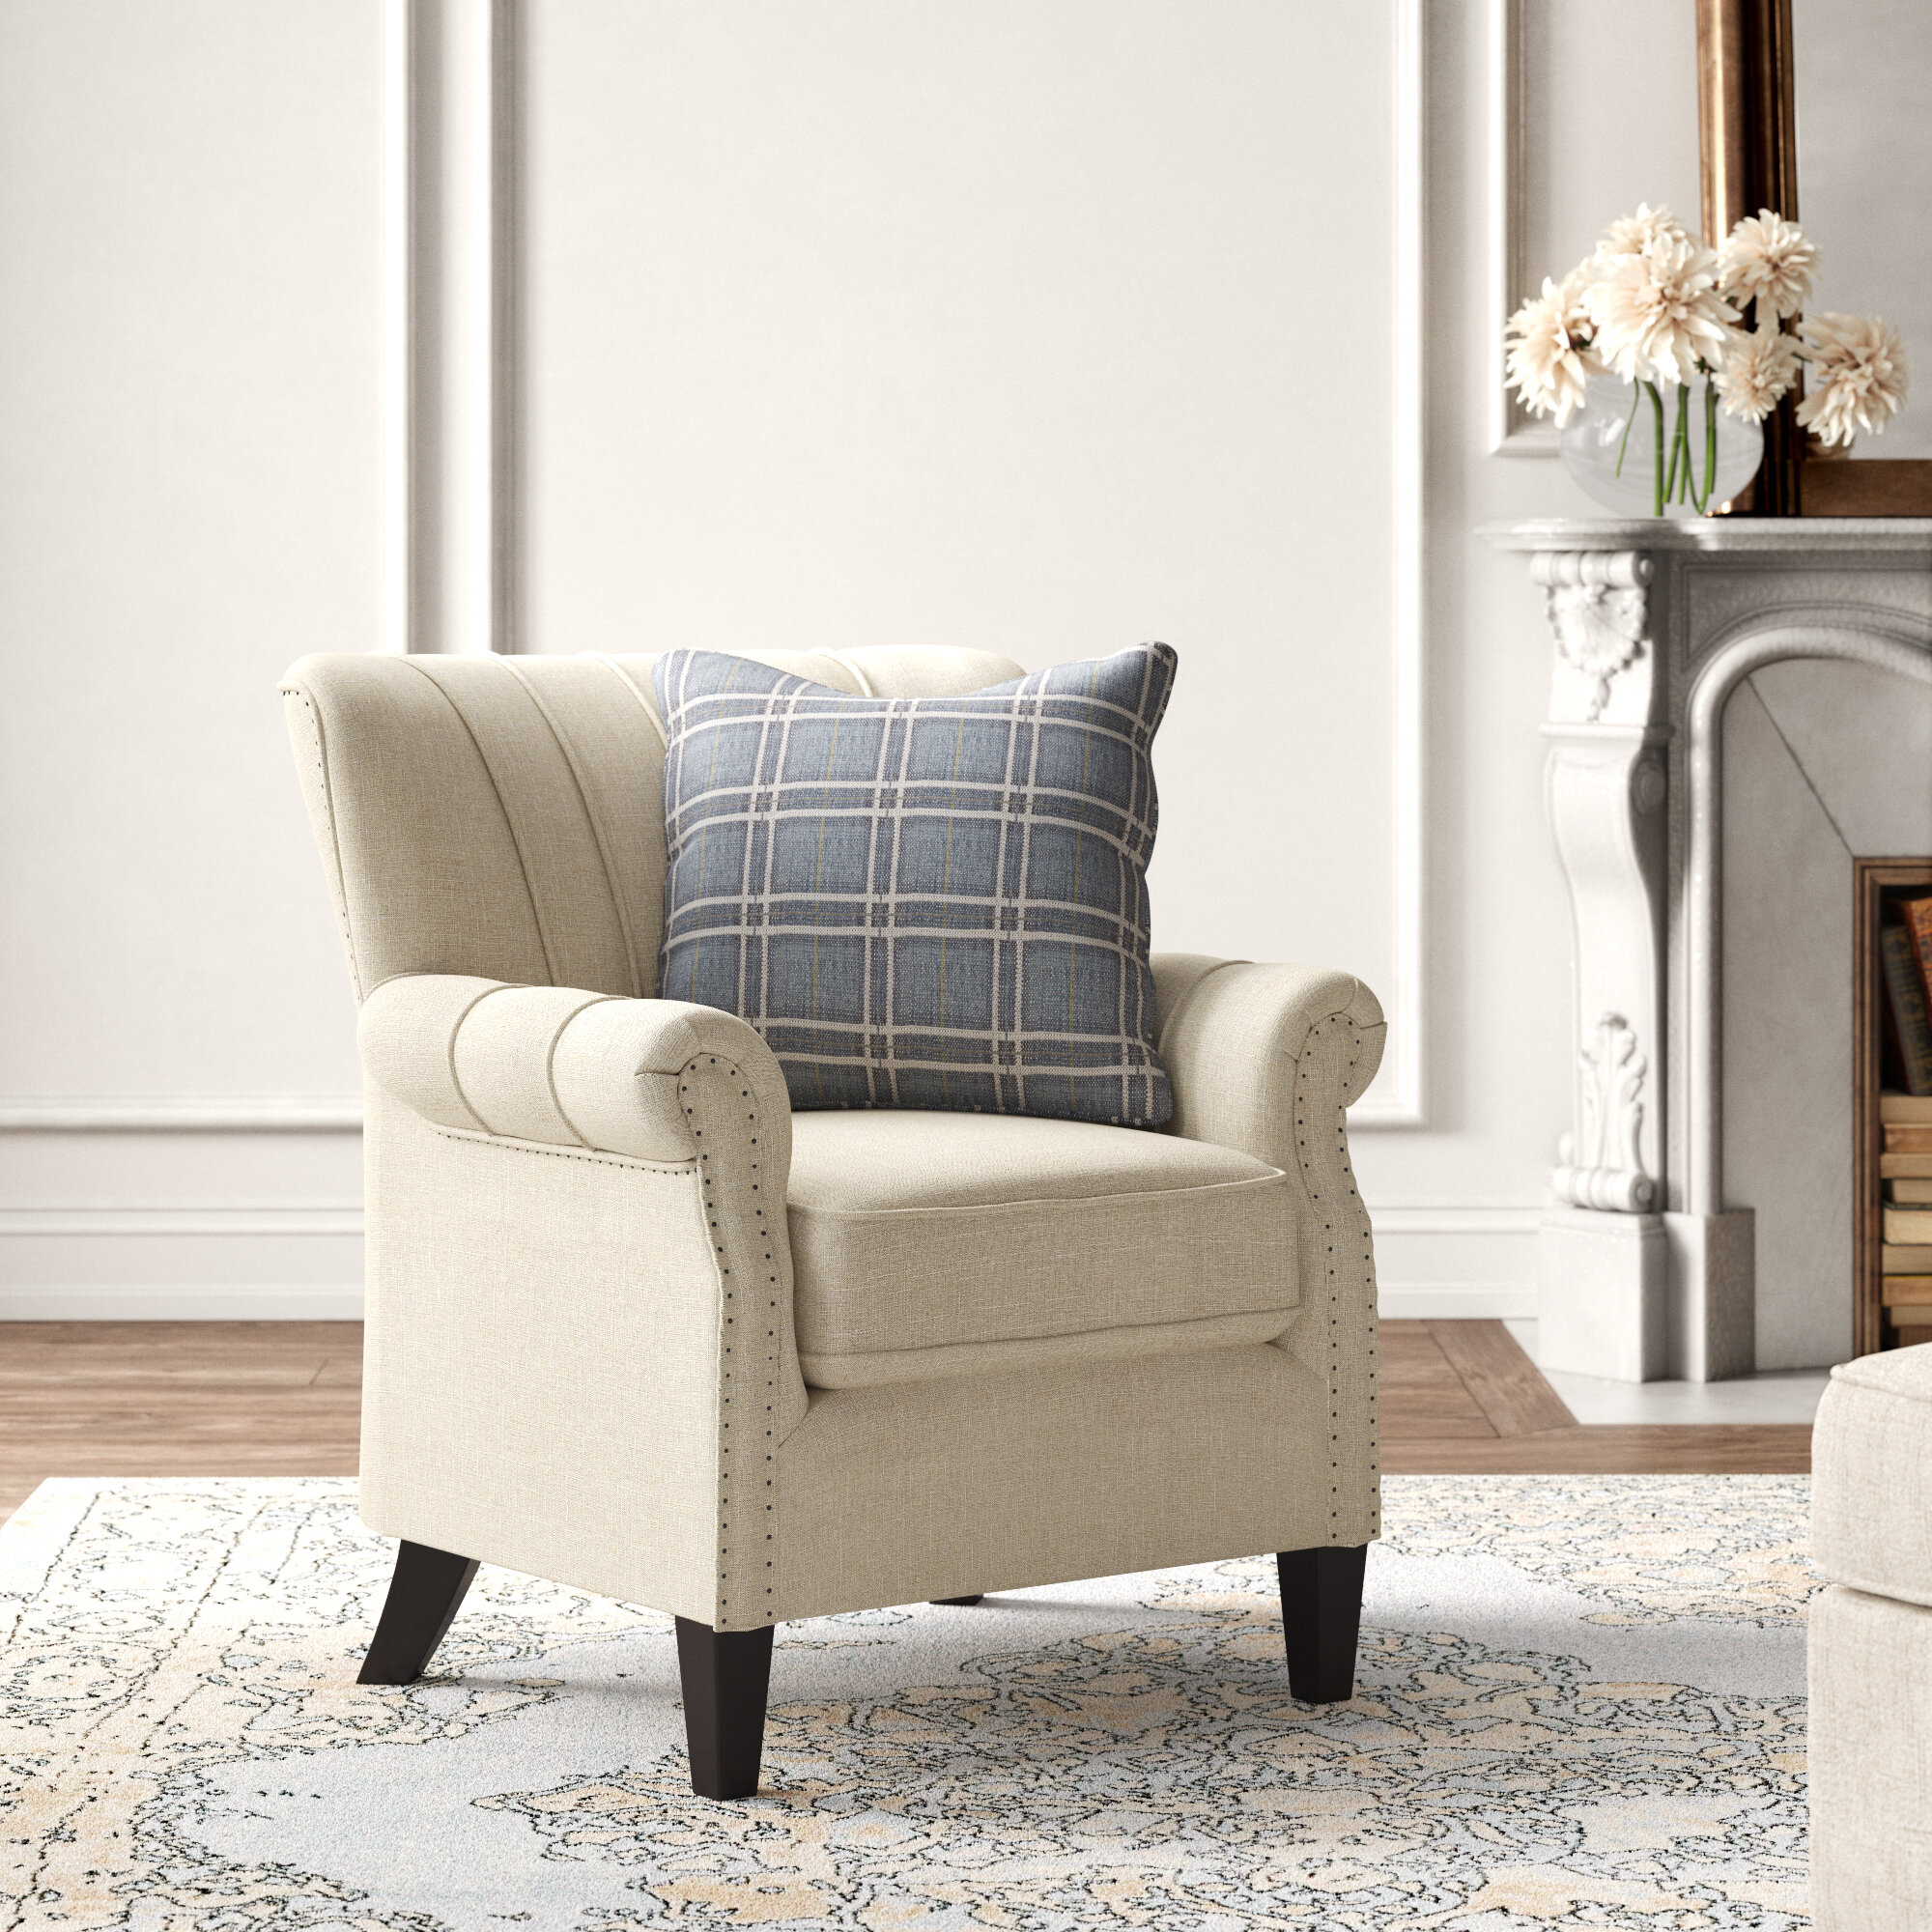 Armchairs | Wayfair Intended For Wainfleet Armchairs (View 13 of 15)